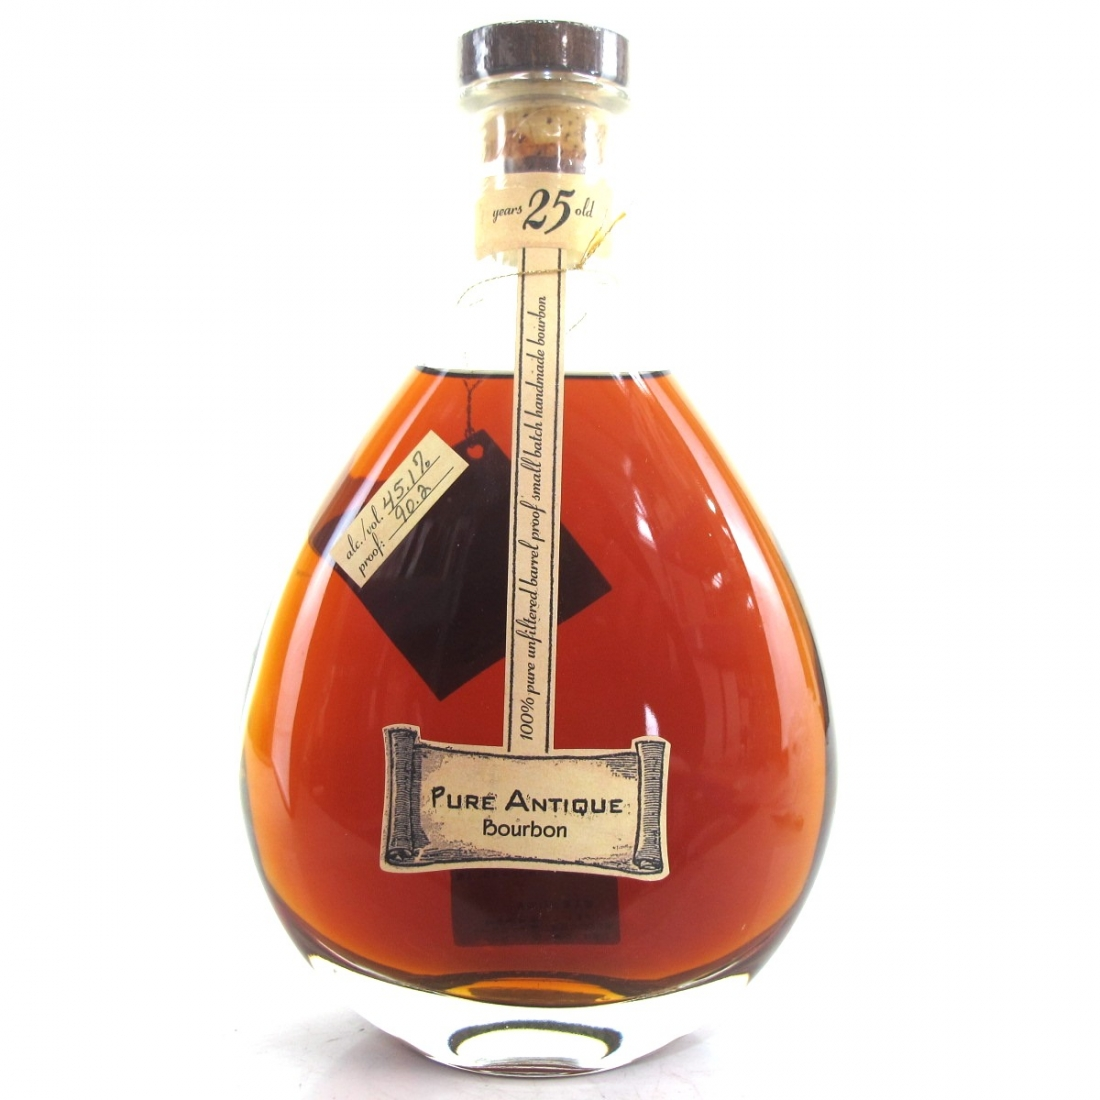 Pure Antique 25 Year Old Bourbon